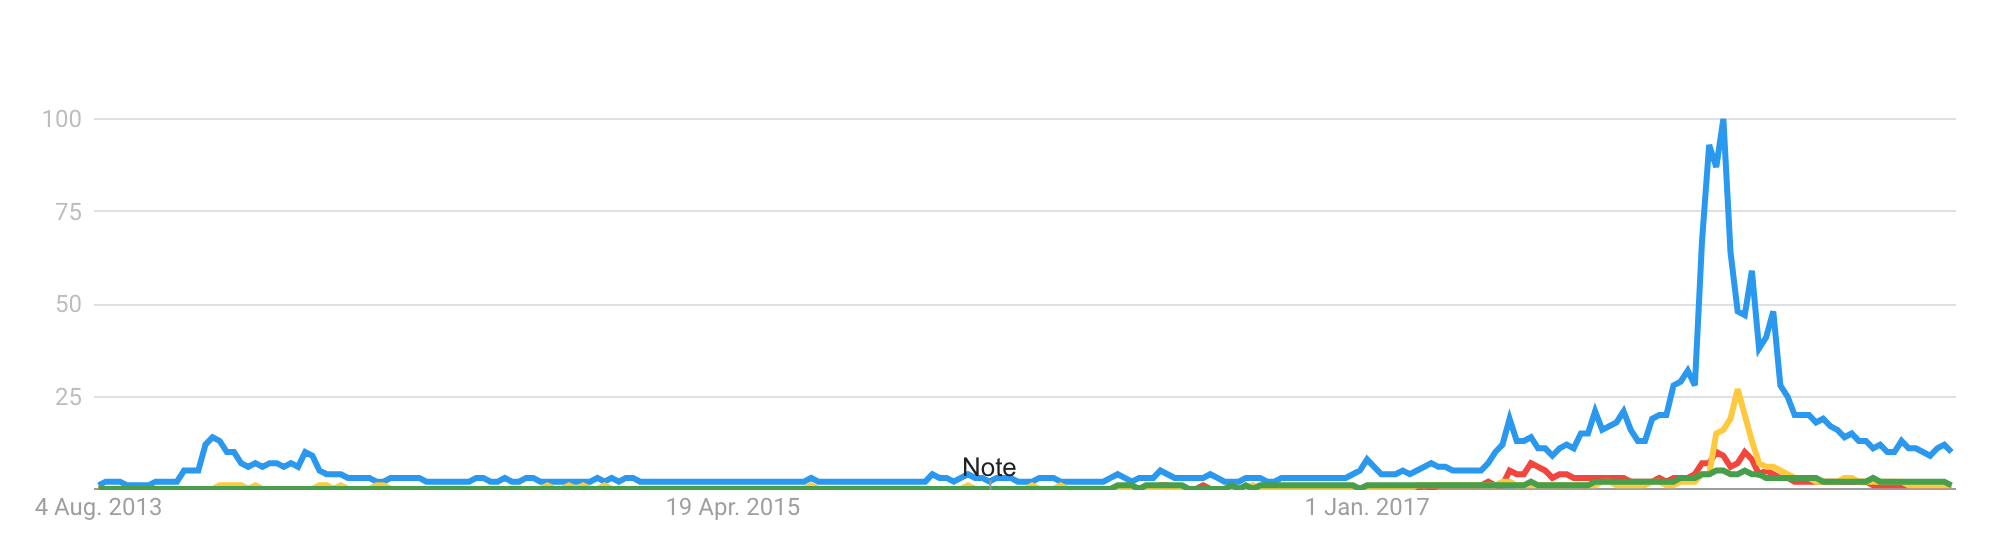 Source: How to get data from Google Trends for charts or